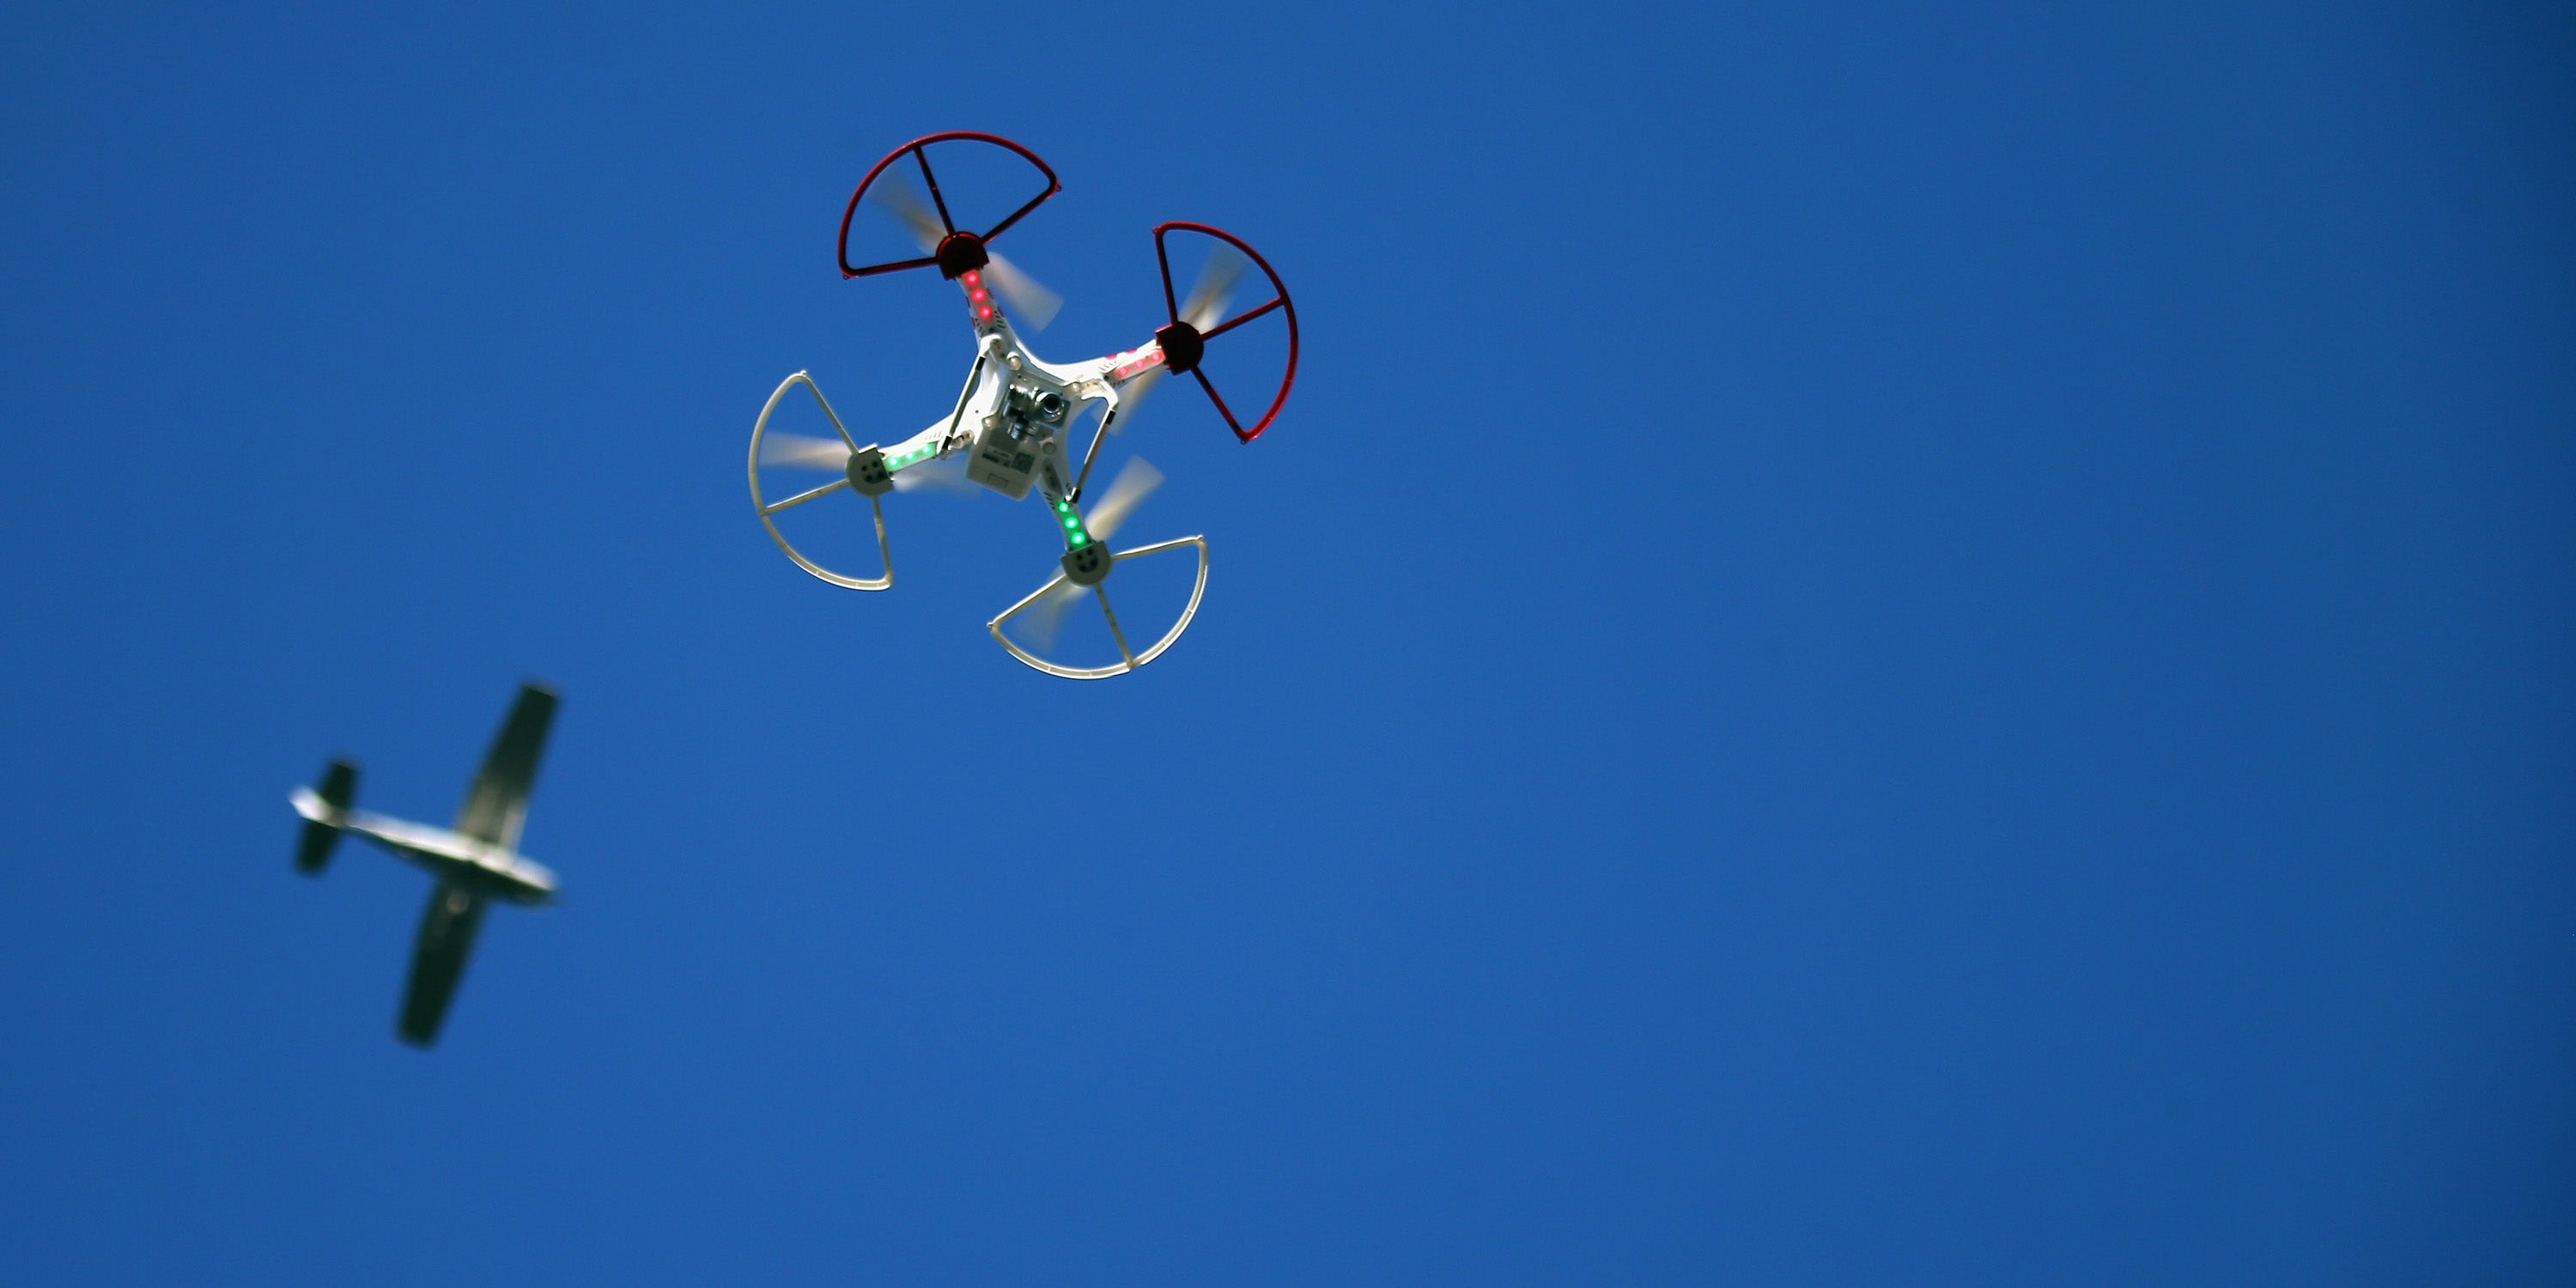 US FAA Releases New Drone Rules, Including One Fairly Shady Loophole